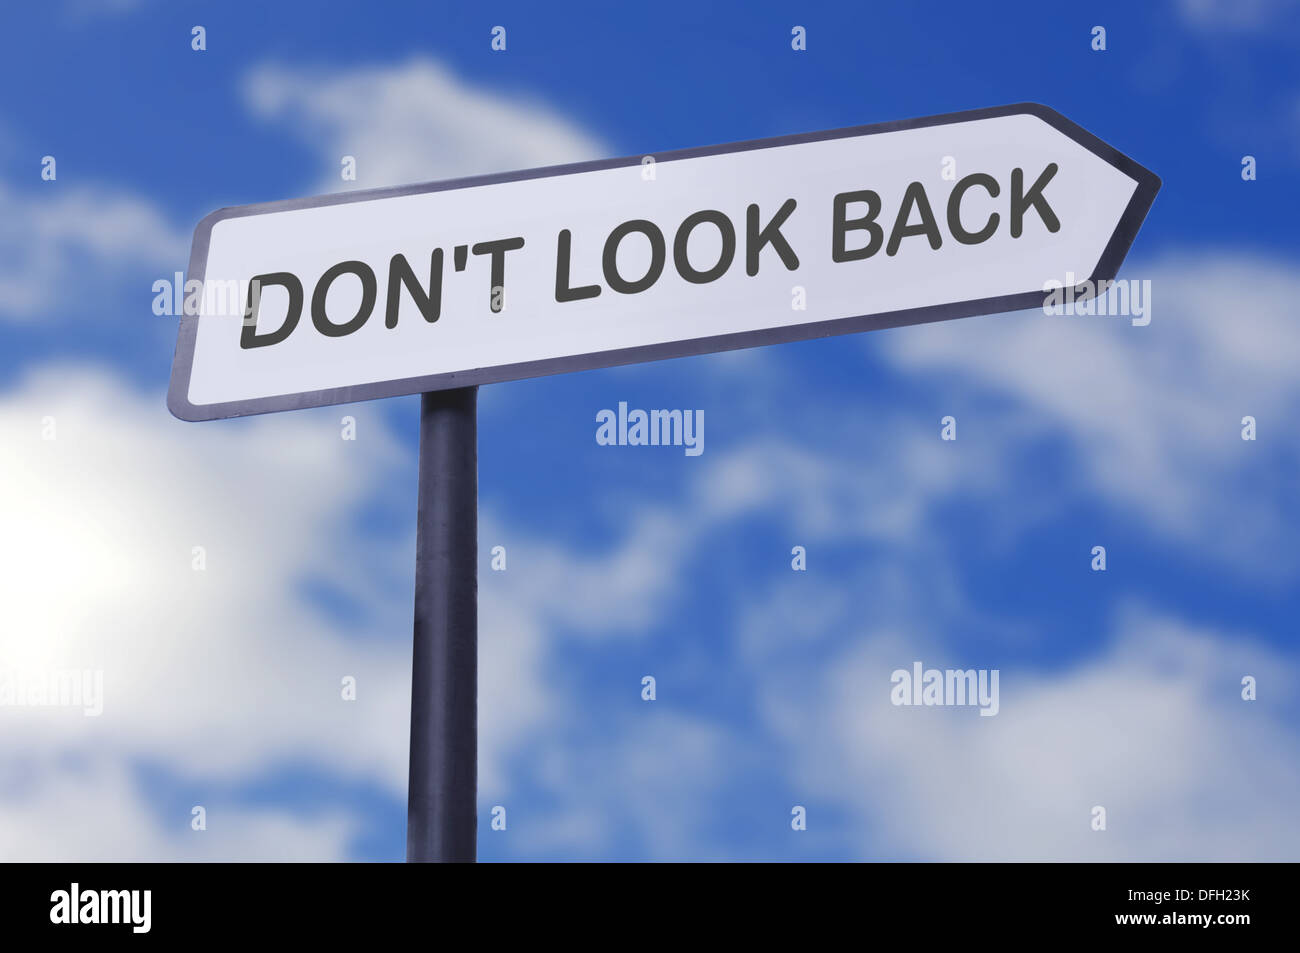 Don't look back motivational street sign - Stock Image